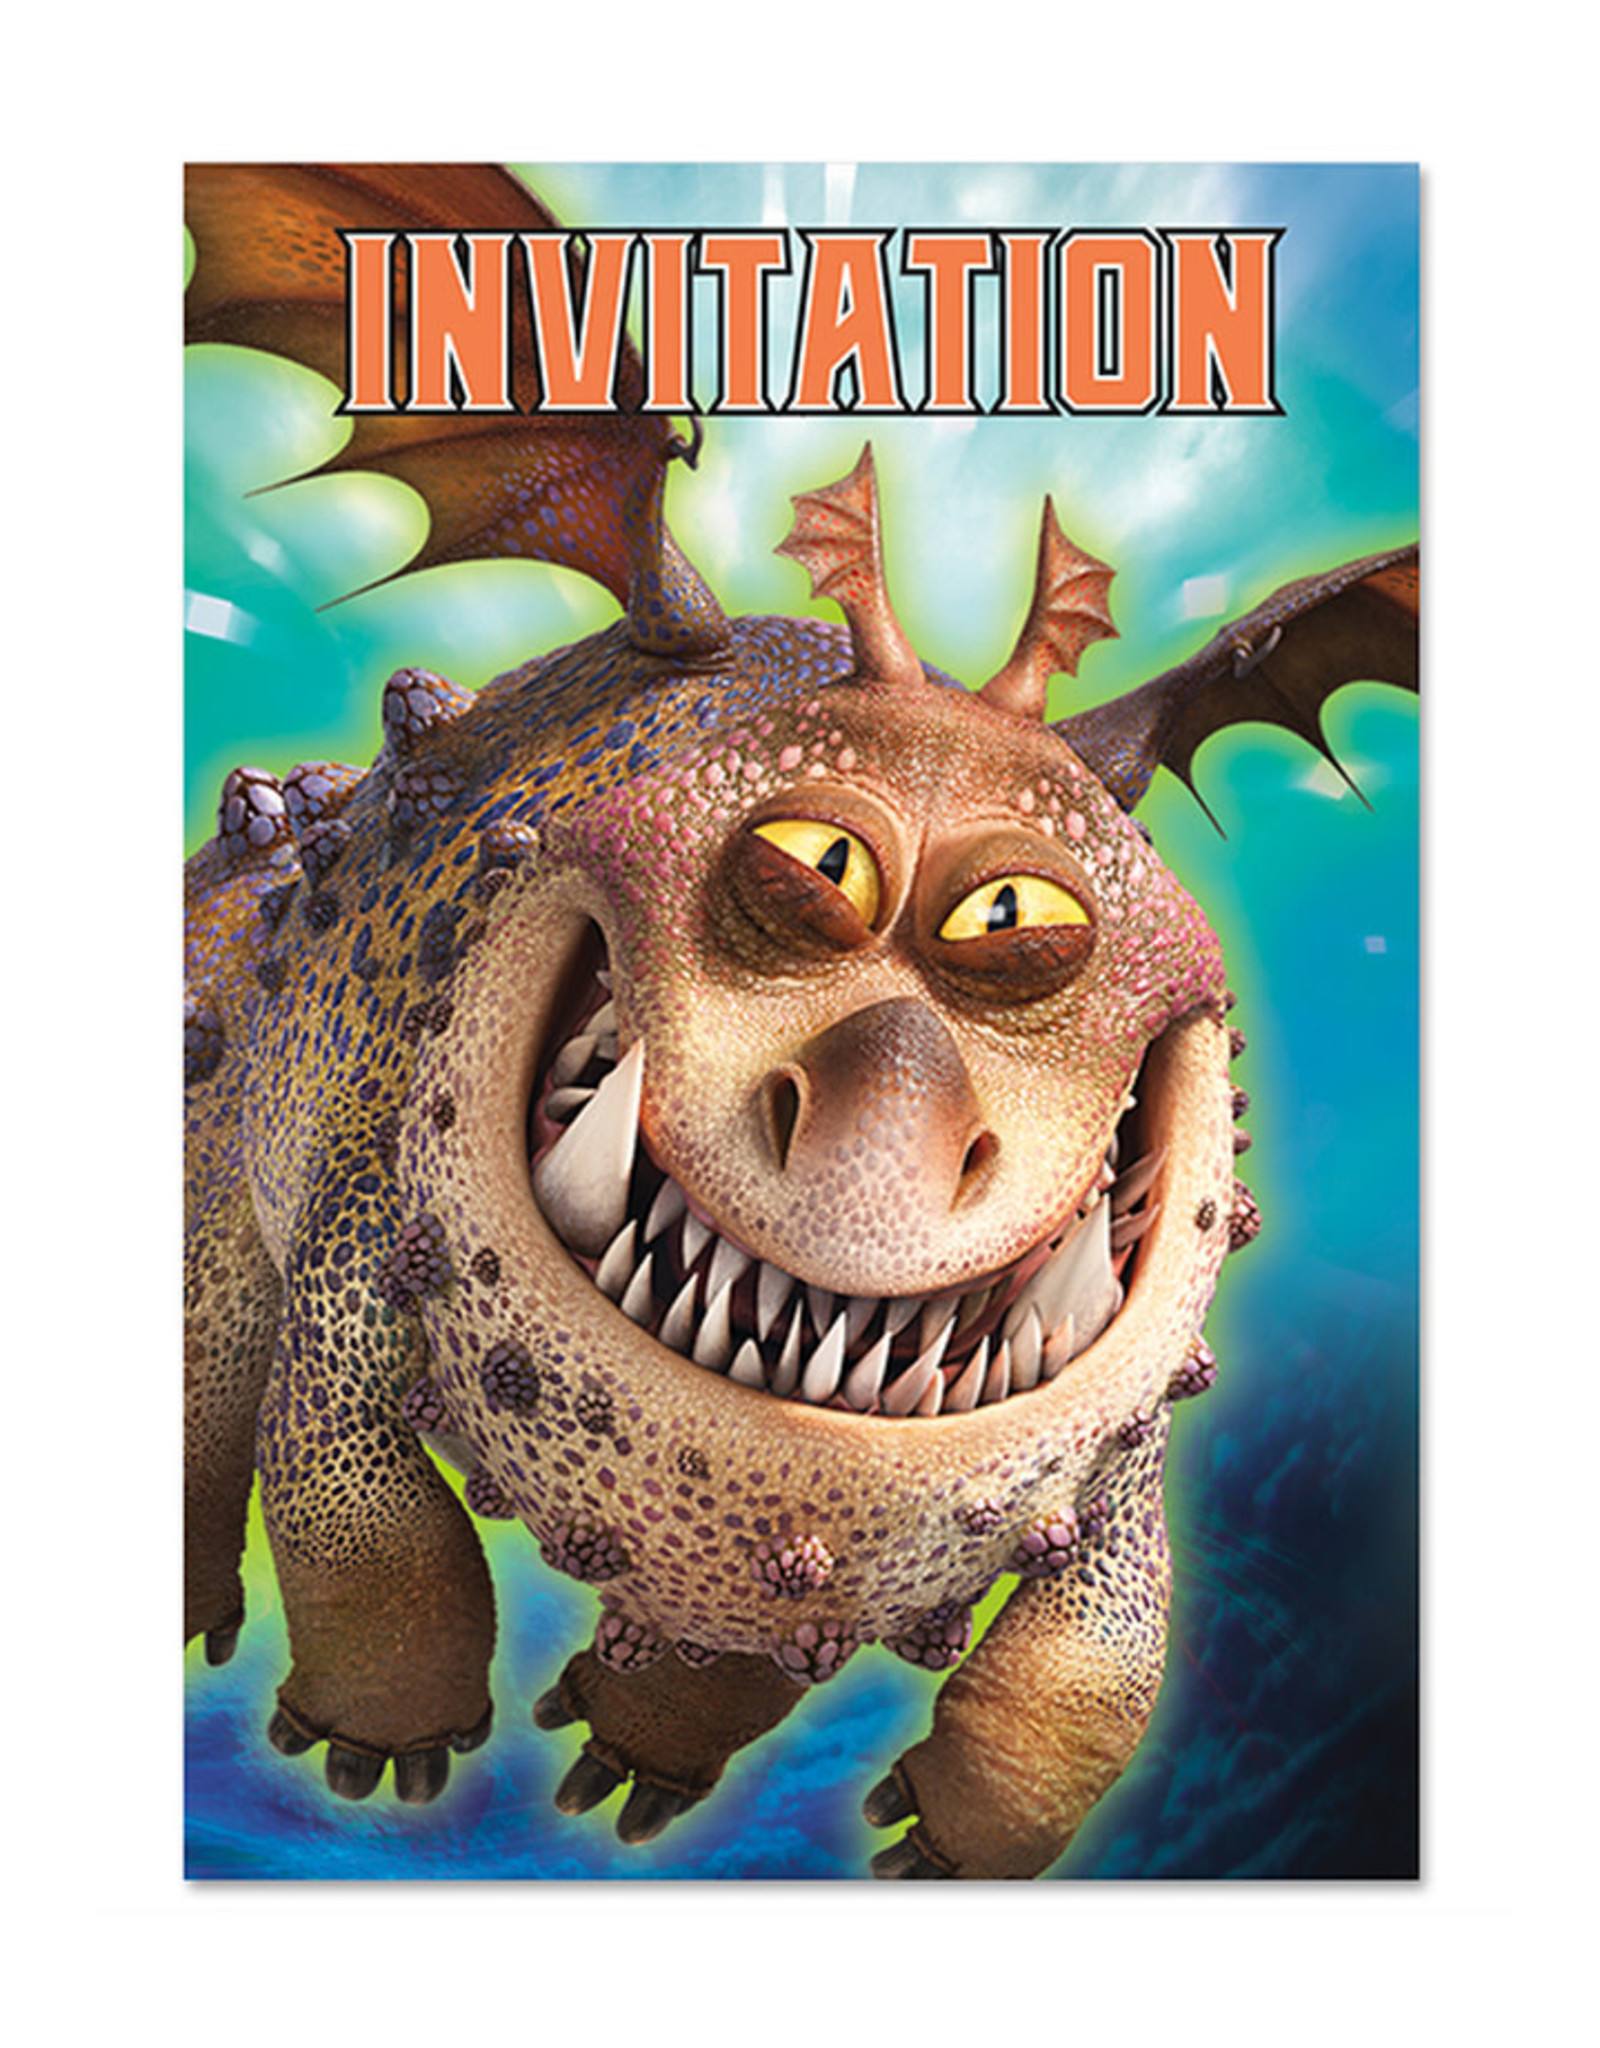 UNIQUE INDUSTRIES INC How to Train Your Dragon Invitations - 8ct